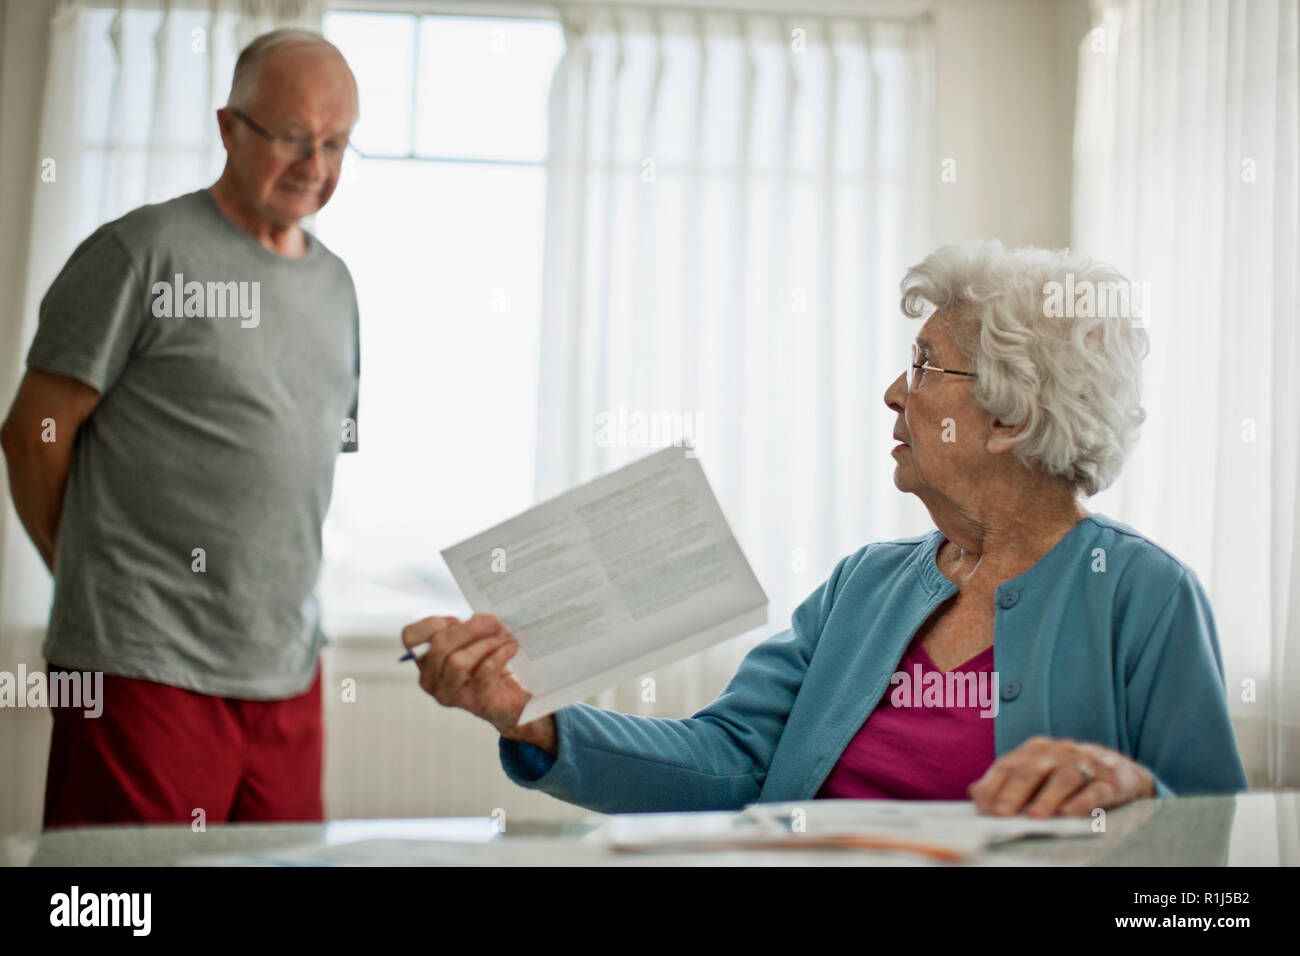 Elderly woman asks her worried husband about a bill they have received. - Stock Image